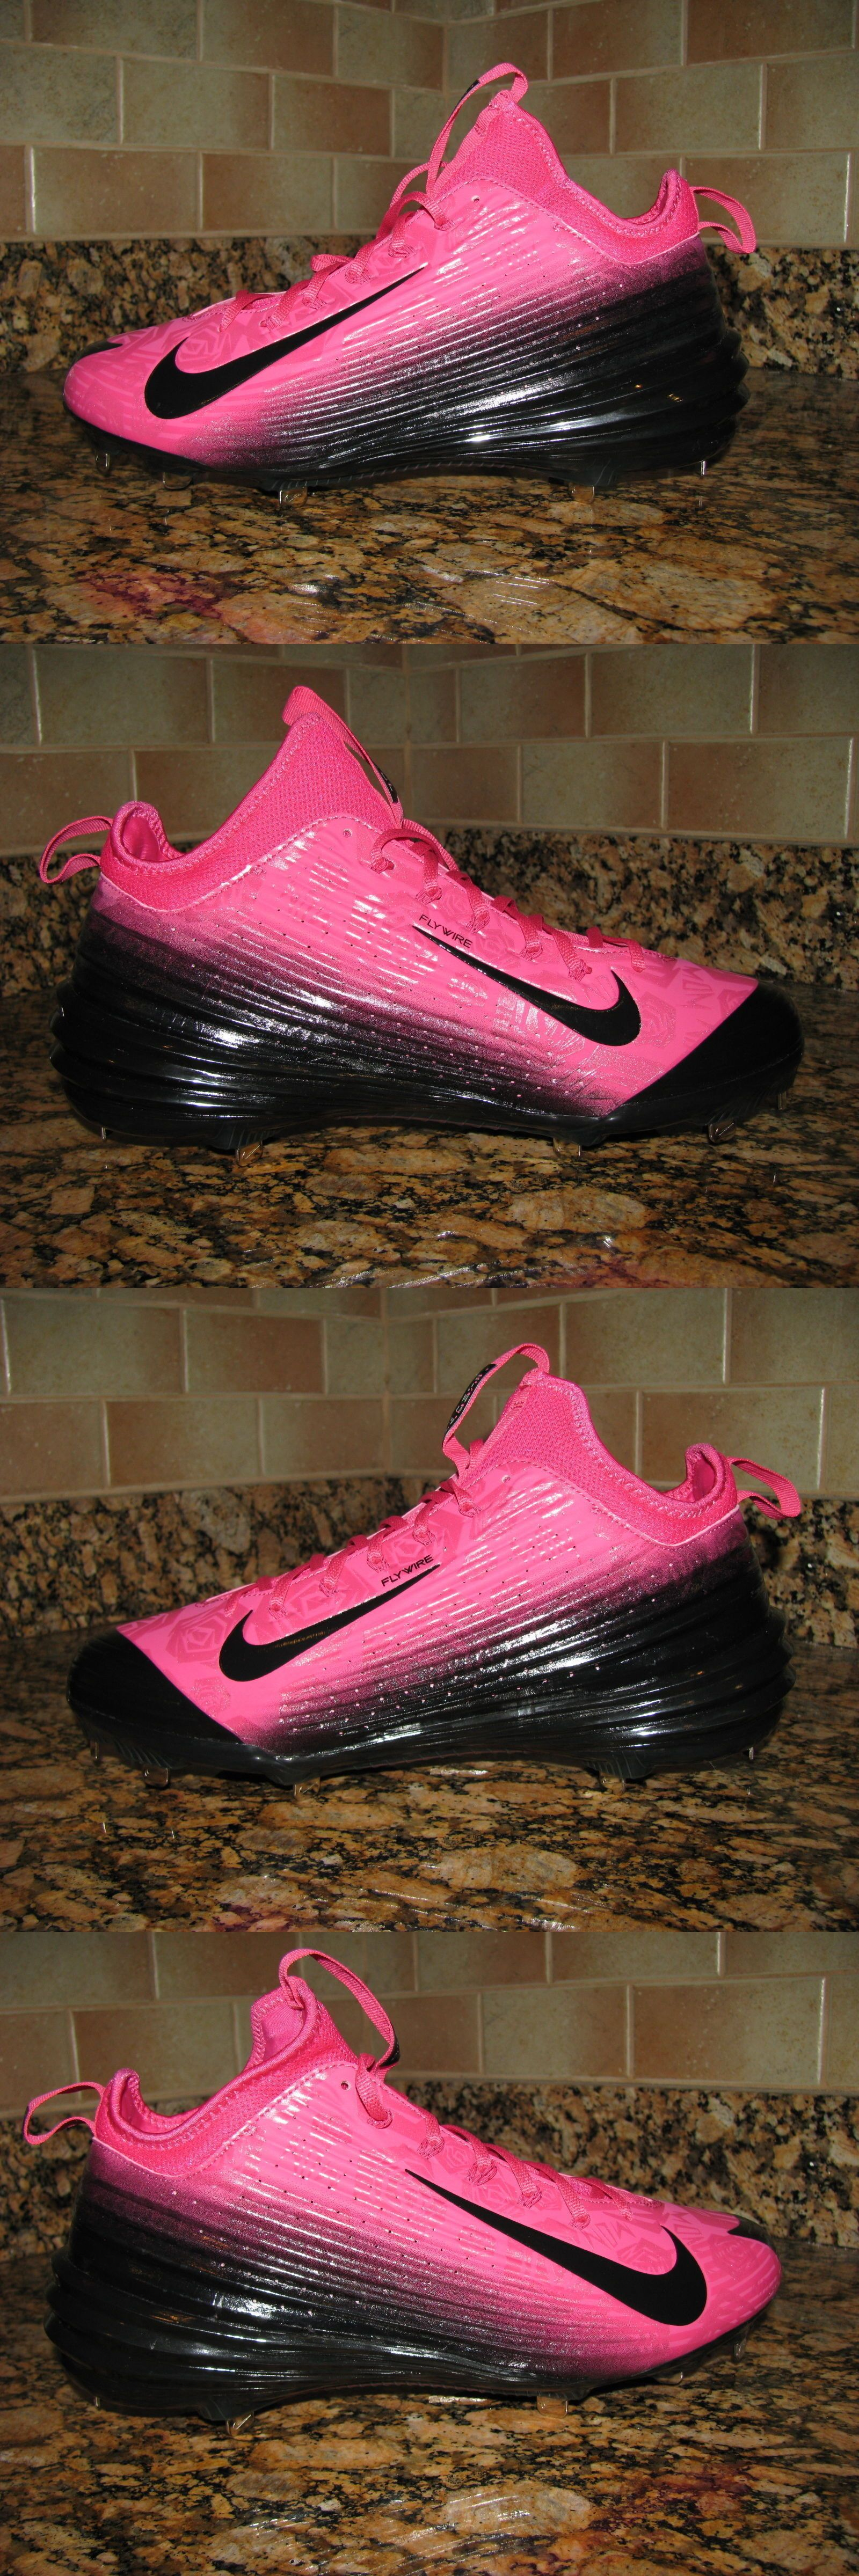 quality design 2a65c 5fbc2 Clothing Shoes and Accessories 159052  Nike Lunar Vapor Trout Mothers Day  Baseball Meta Cleats Size